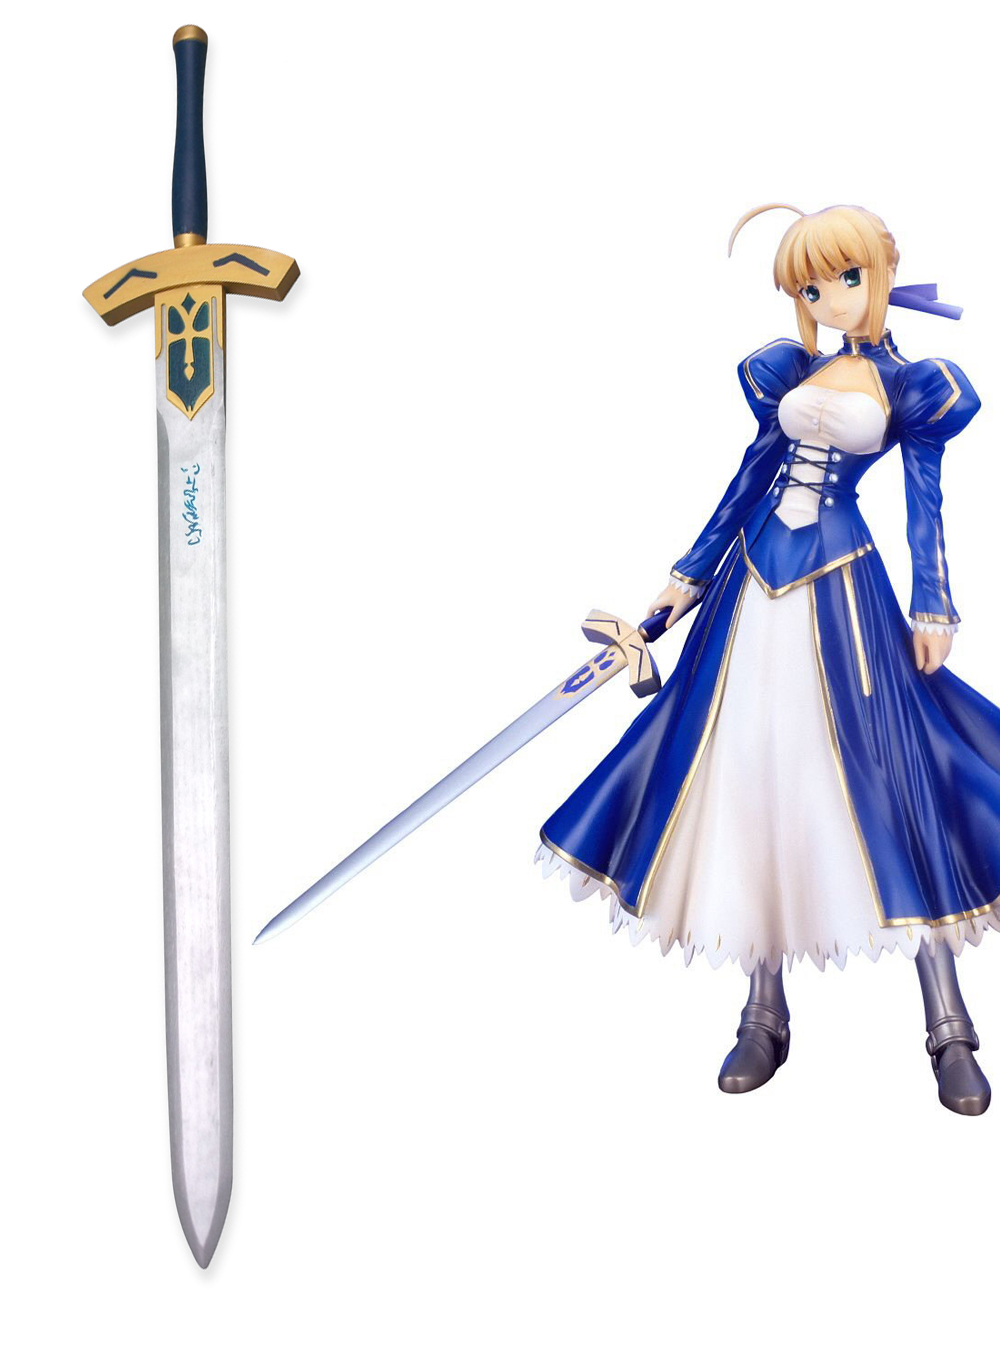 Fate stay night Saber  Excalibur Cosplay Sword Wooden Weapons